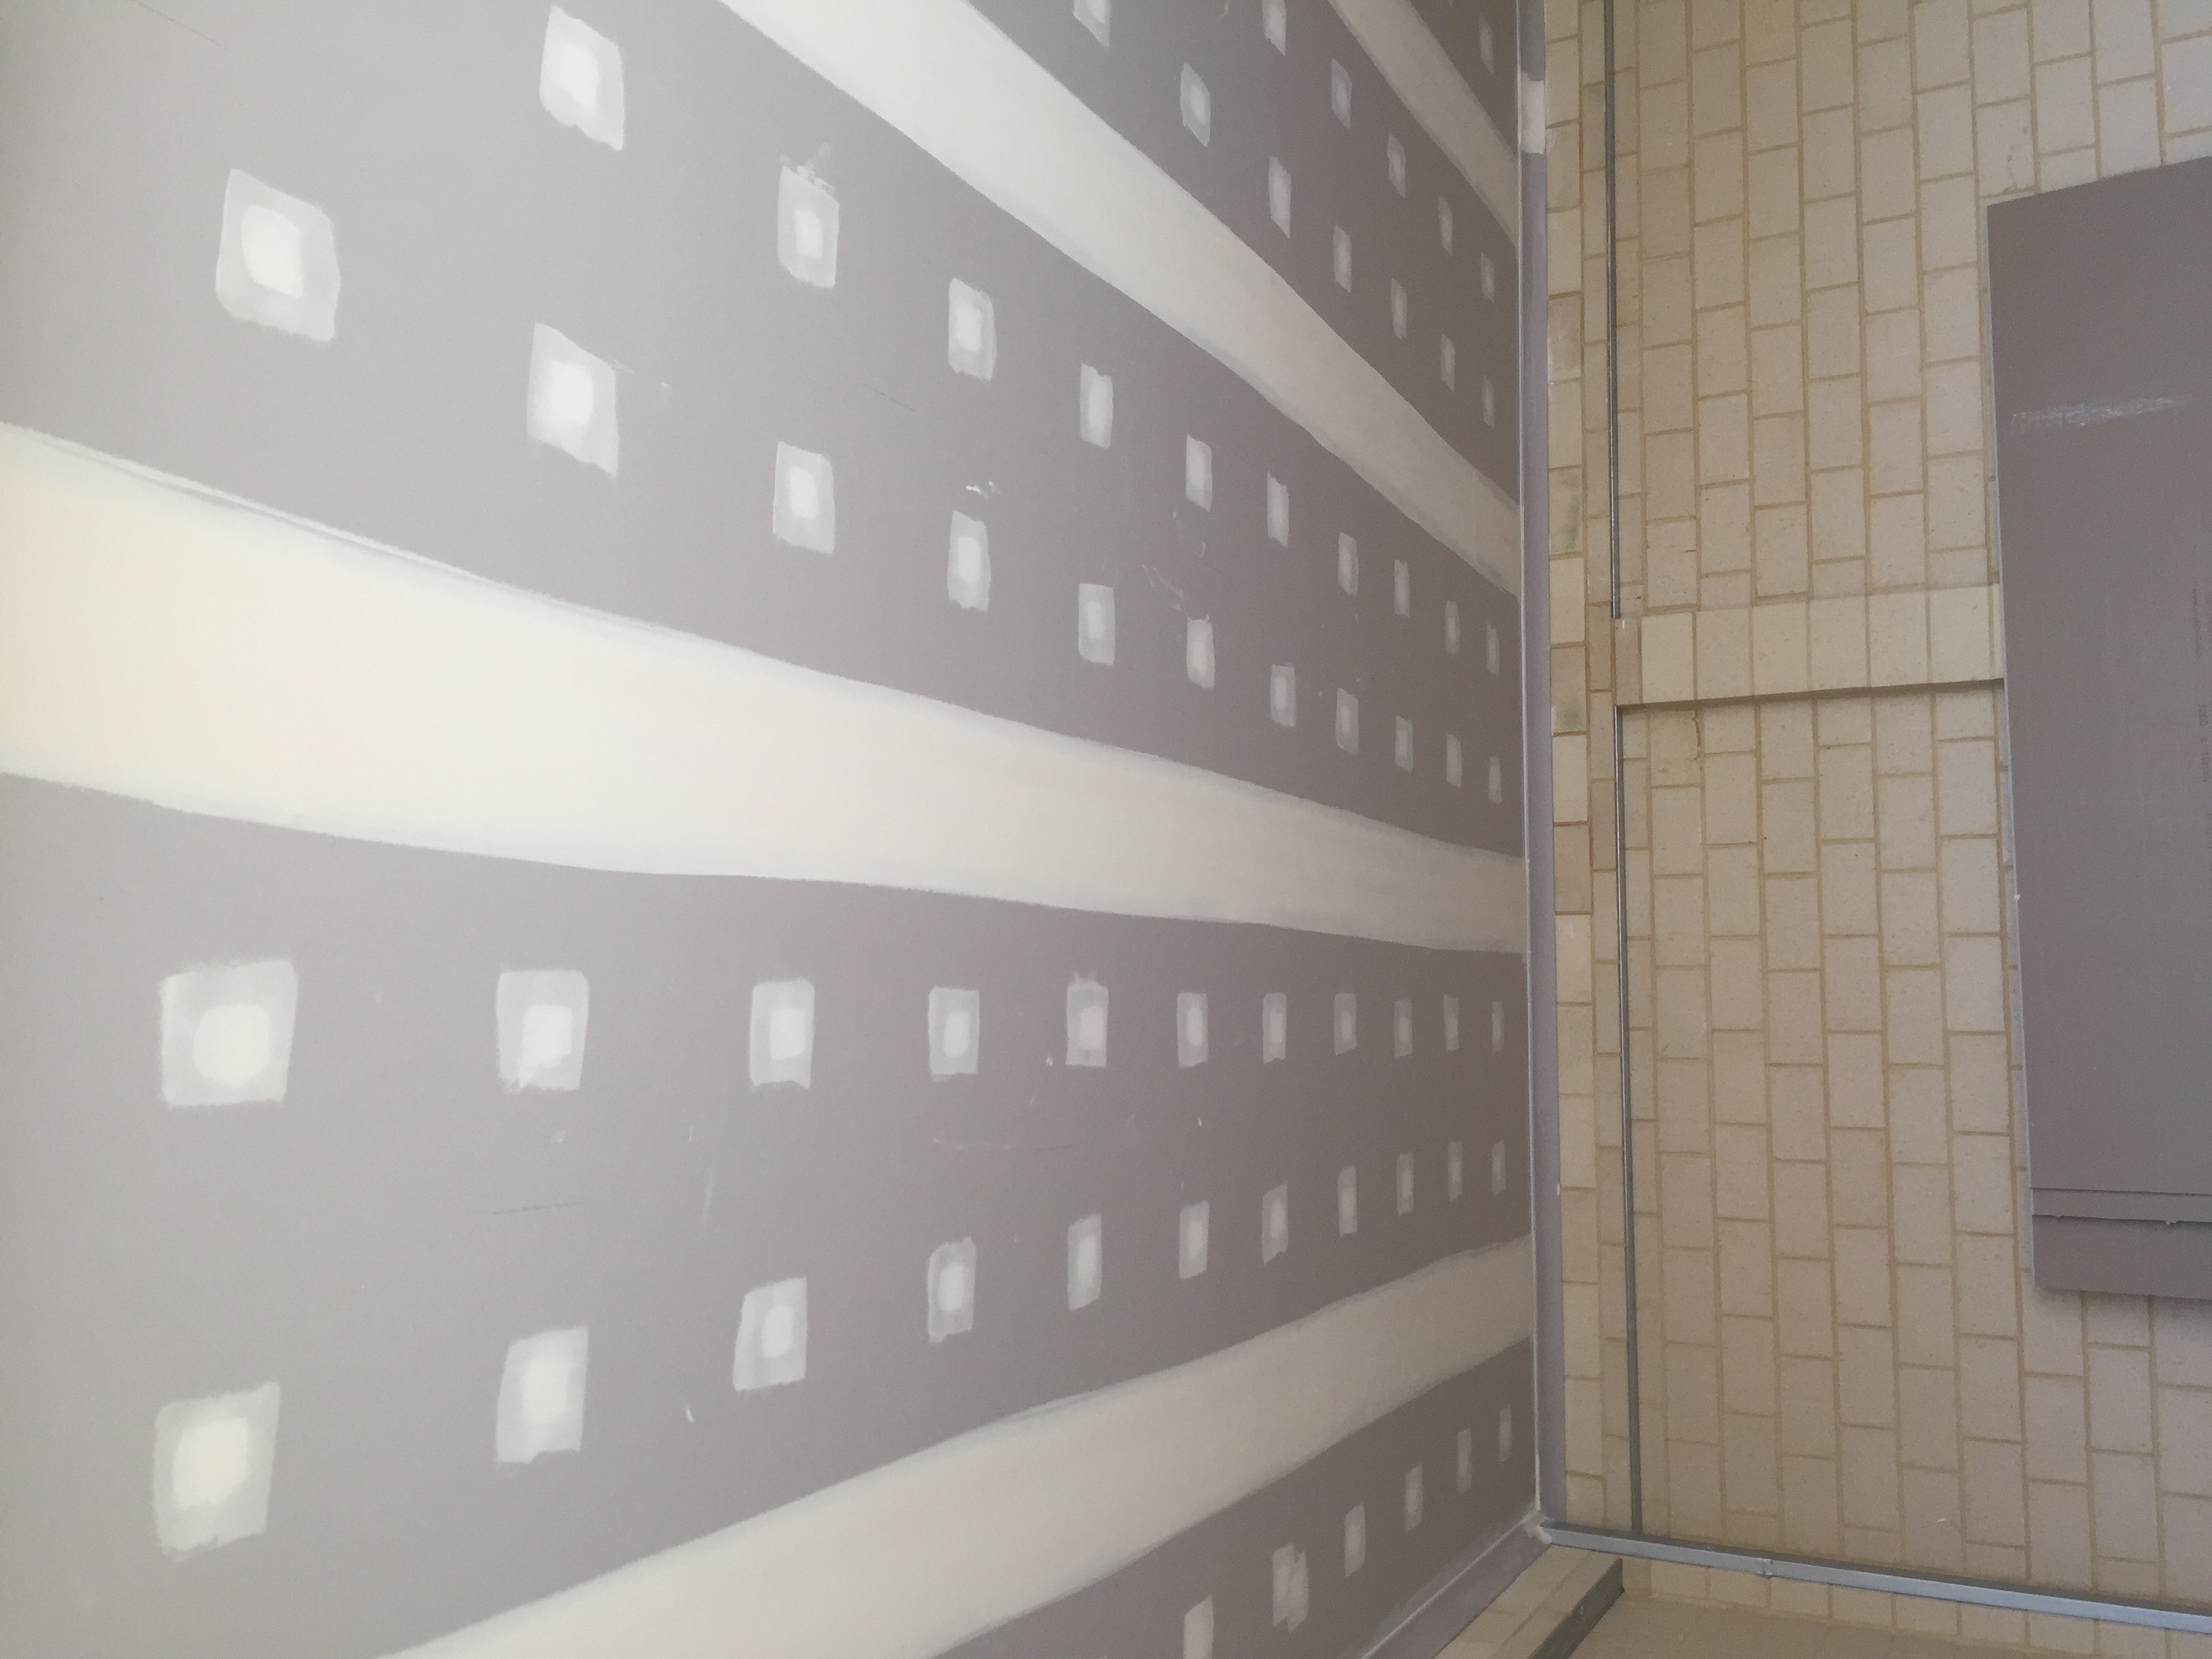 Cool 1 X 1 Ceiling Tiles Thin 12X12 Ceramic Floor Tile Rectangular 2 X 6 Subway Tile 2X2 Floor Tile Old 2X8 Subway Tile Coloured4 Inch Ceramic Tile Ceiling Repair, Patch Holes, 0414529169, Water Damage, Sagging Ceiling